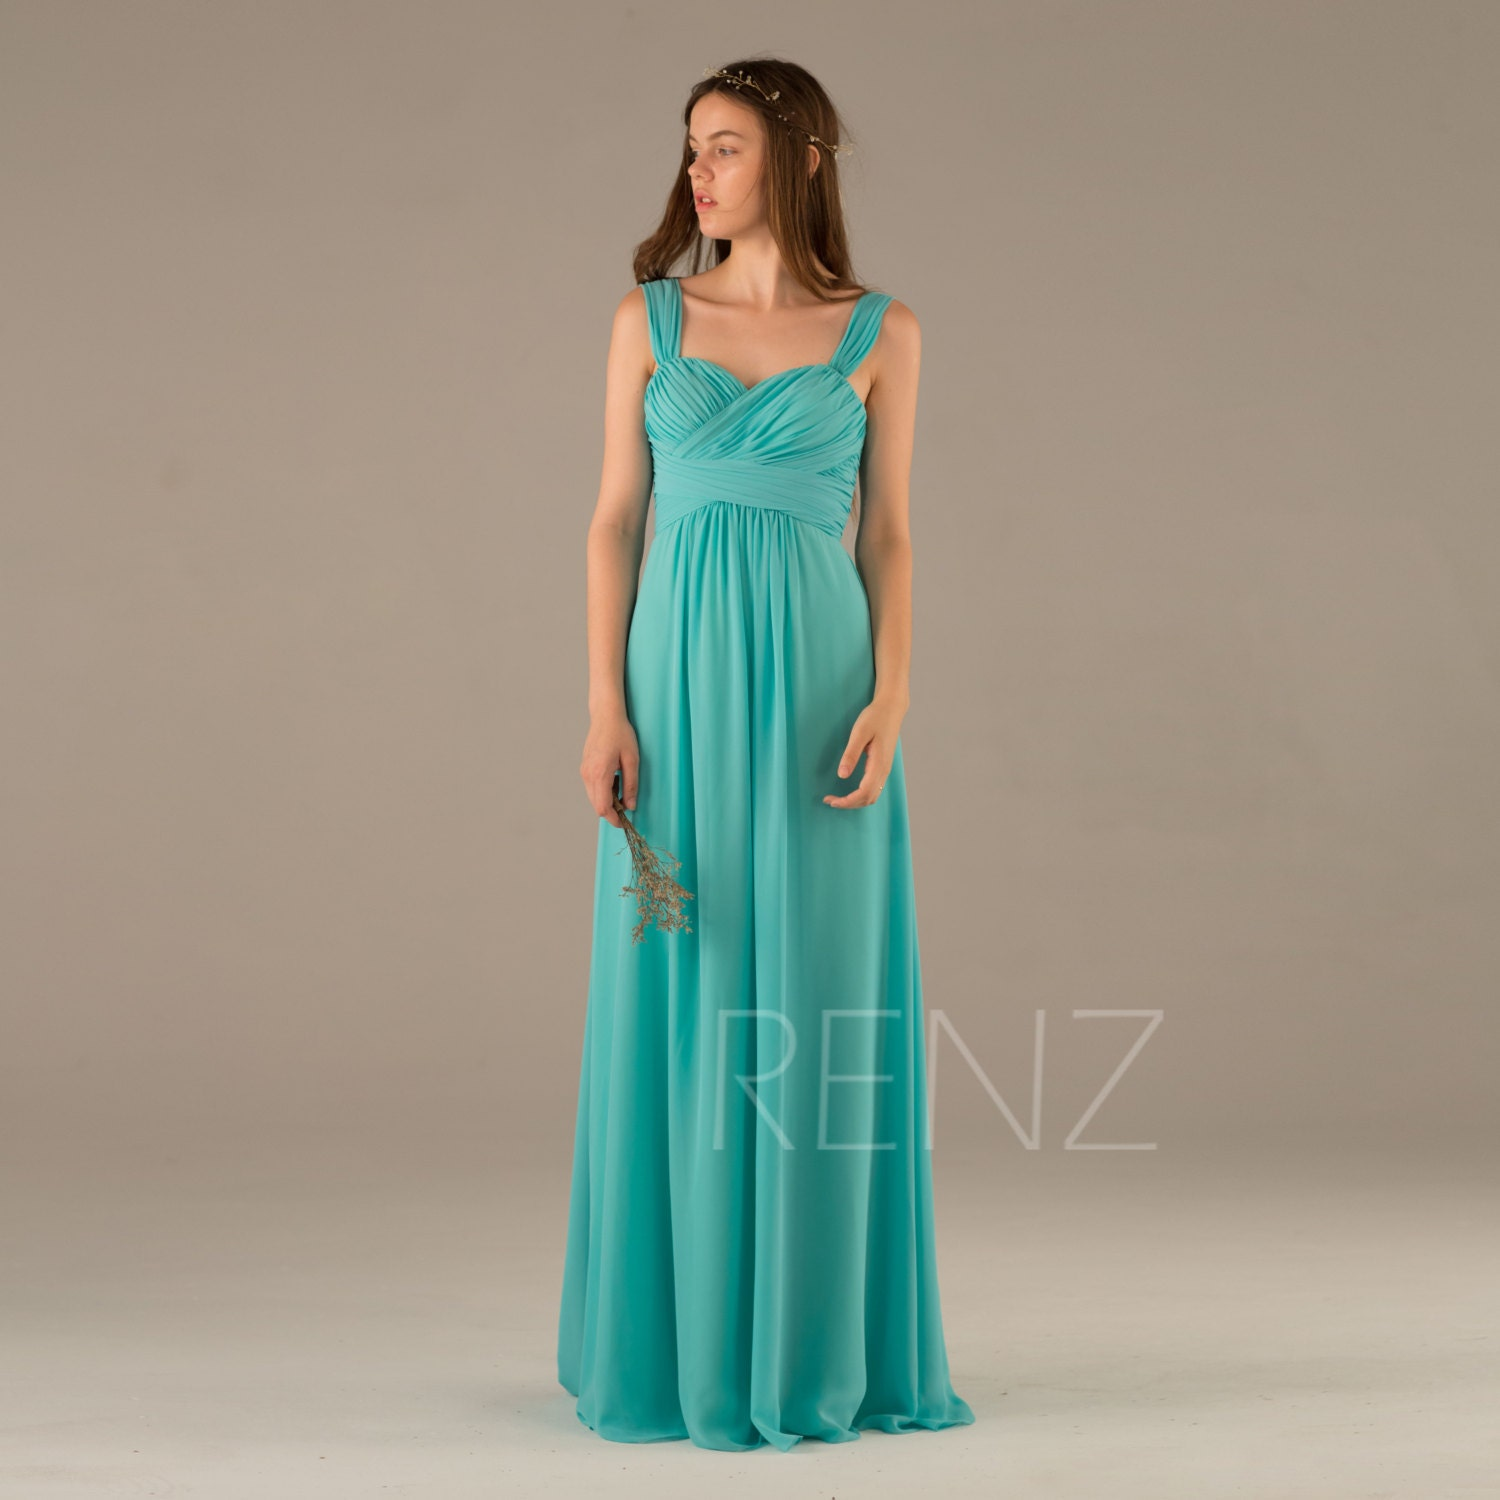 Bridesmaid dress turquoise wedding dresslong criss cross zoom ombrellifo Image collections